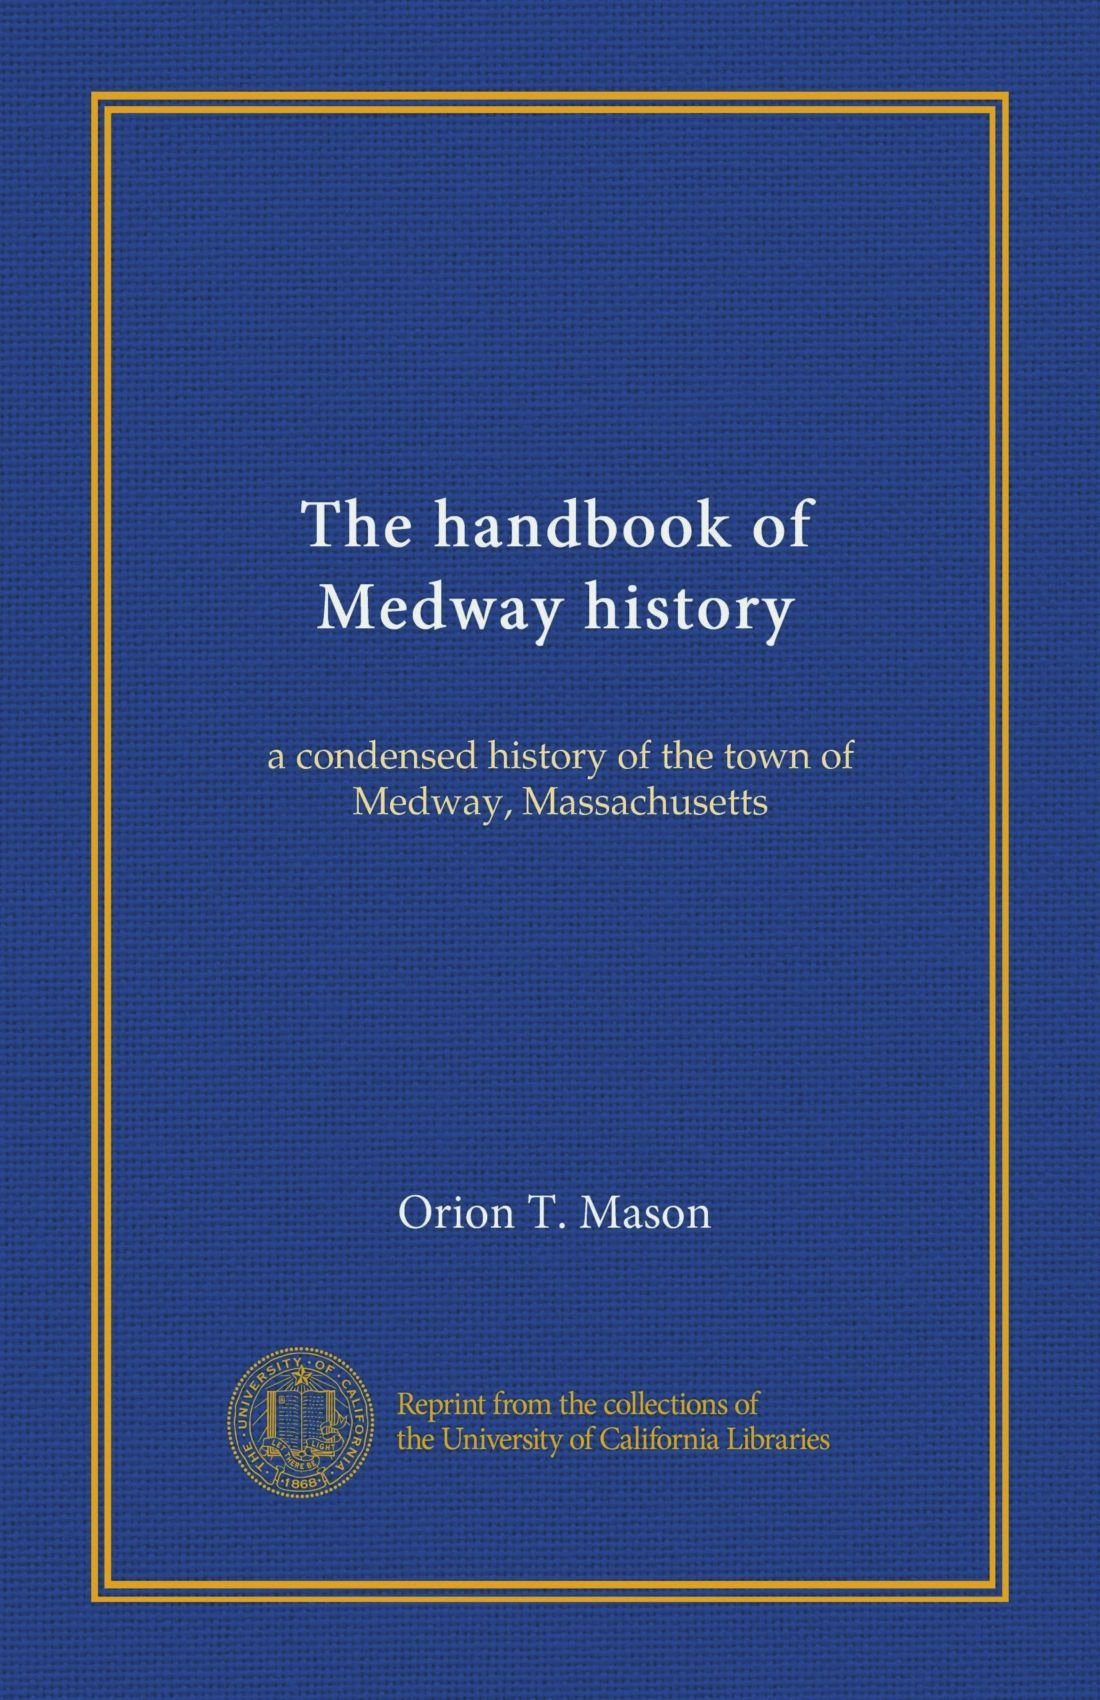 The handbook of Medway history: a condensed history of the town of Medway, Massachusetts ebook